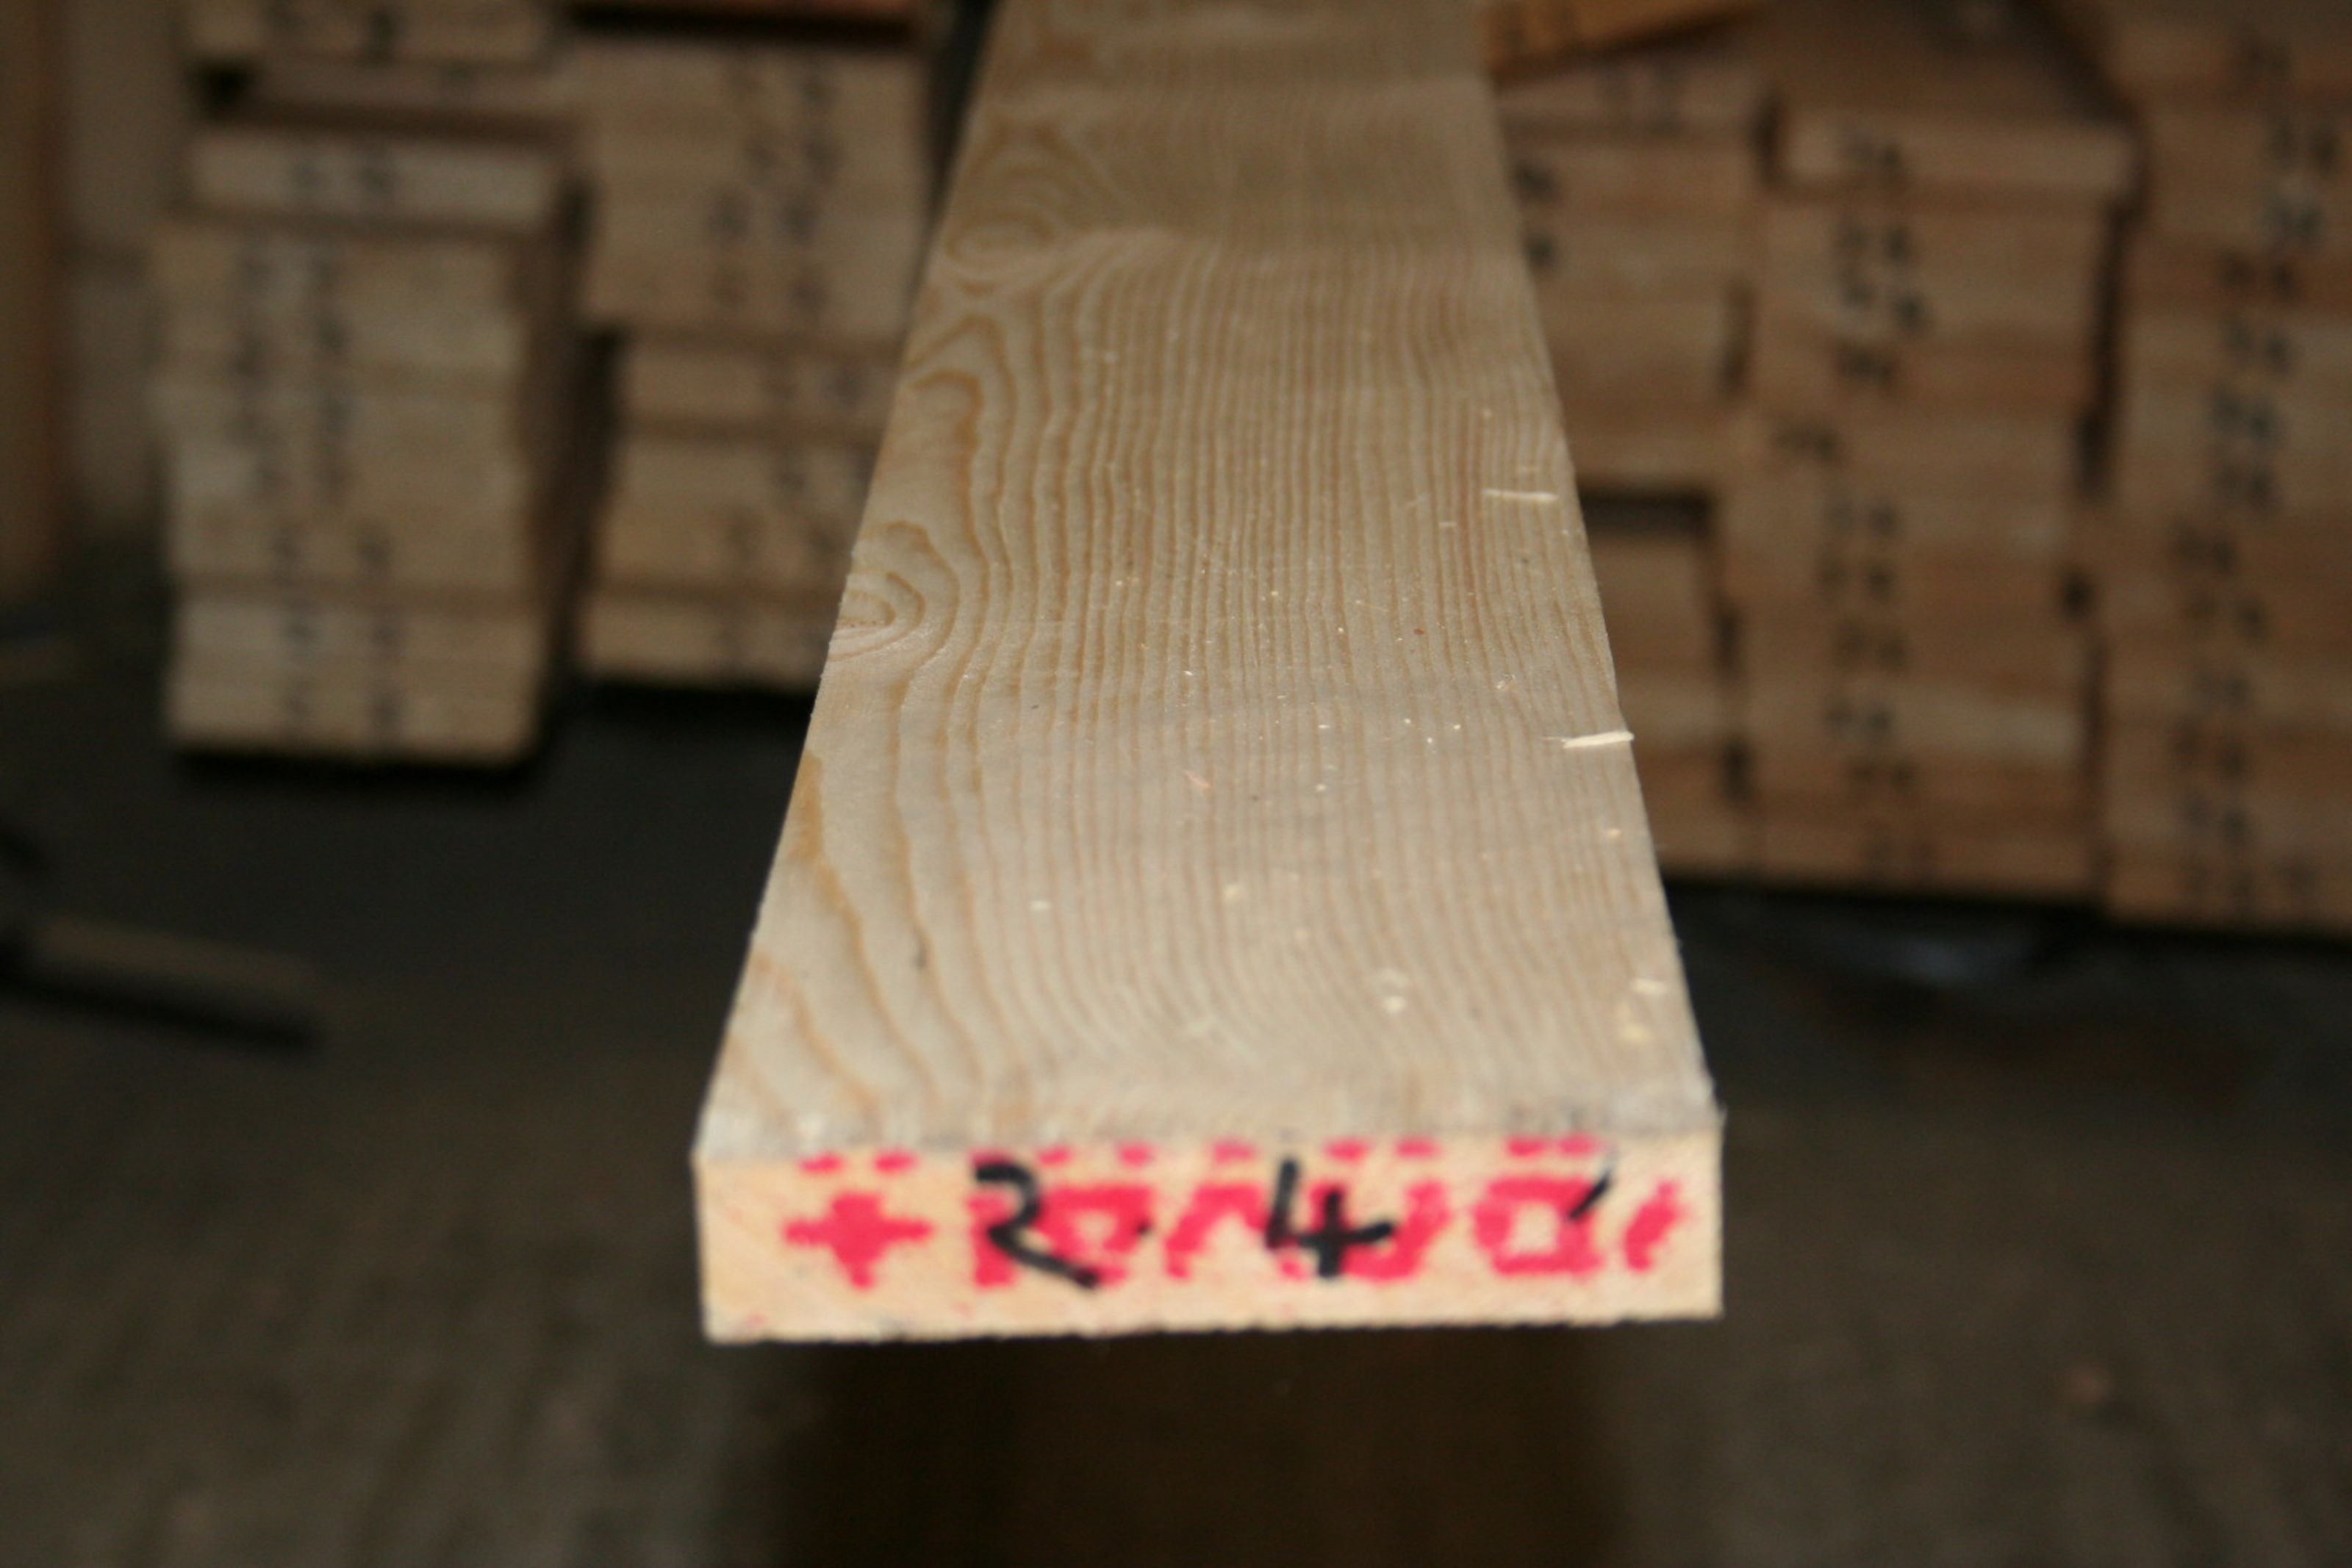 Pine 4x1 PSE Whitewood Timber Length